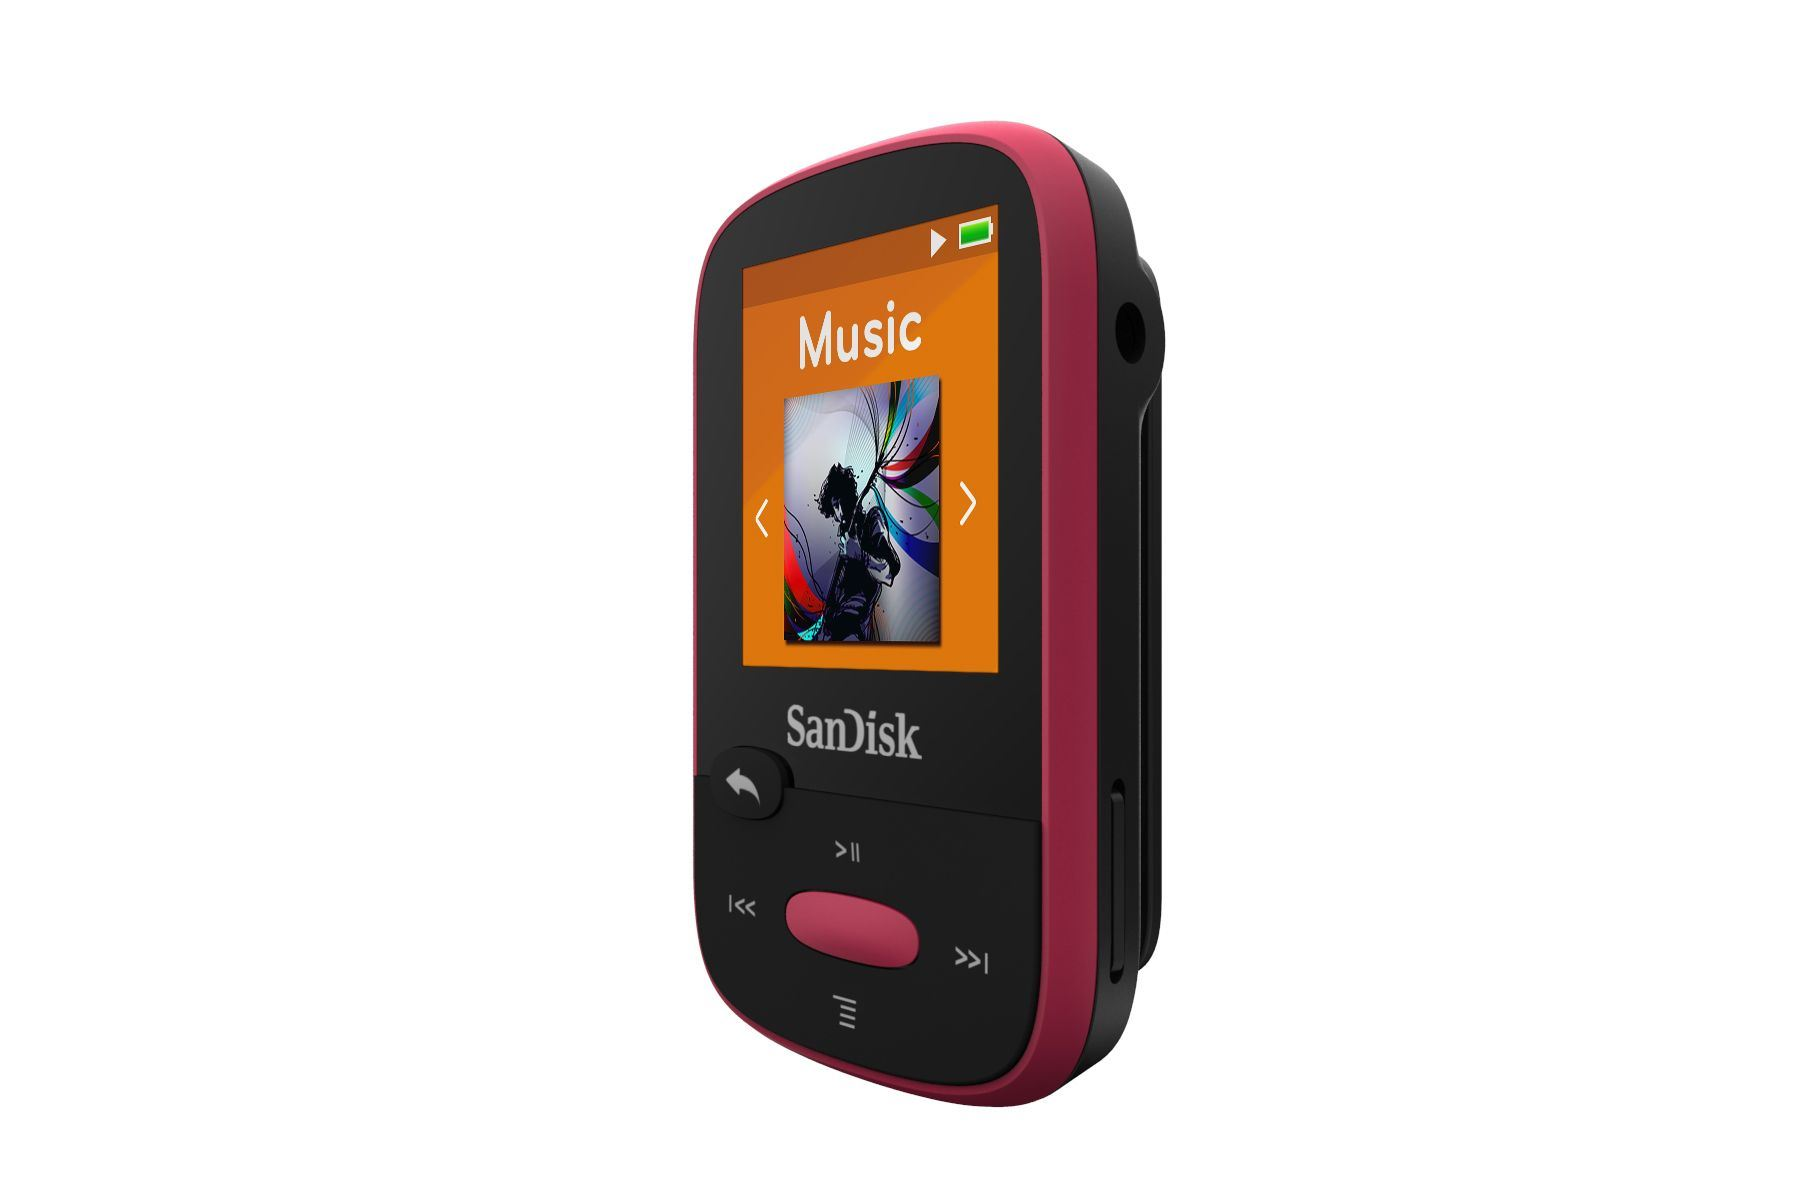 SanDisk-Clip-Sport-MP3-Player-8GB-Pink-holds-2000-songs